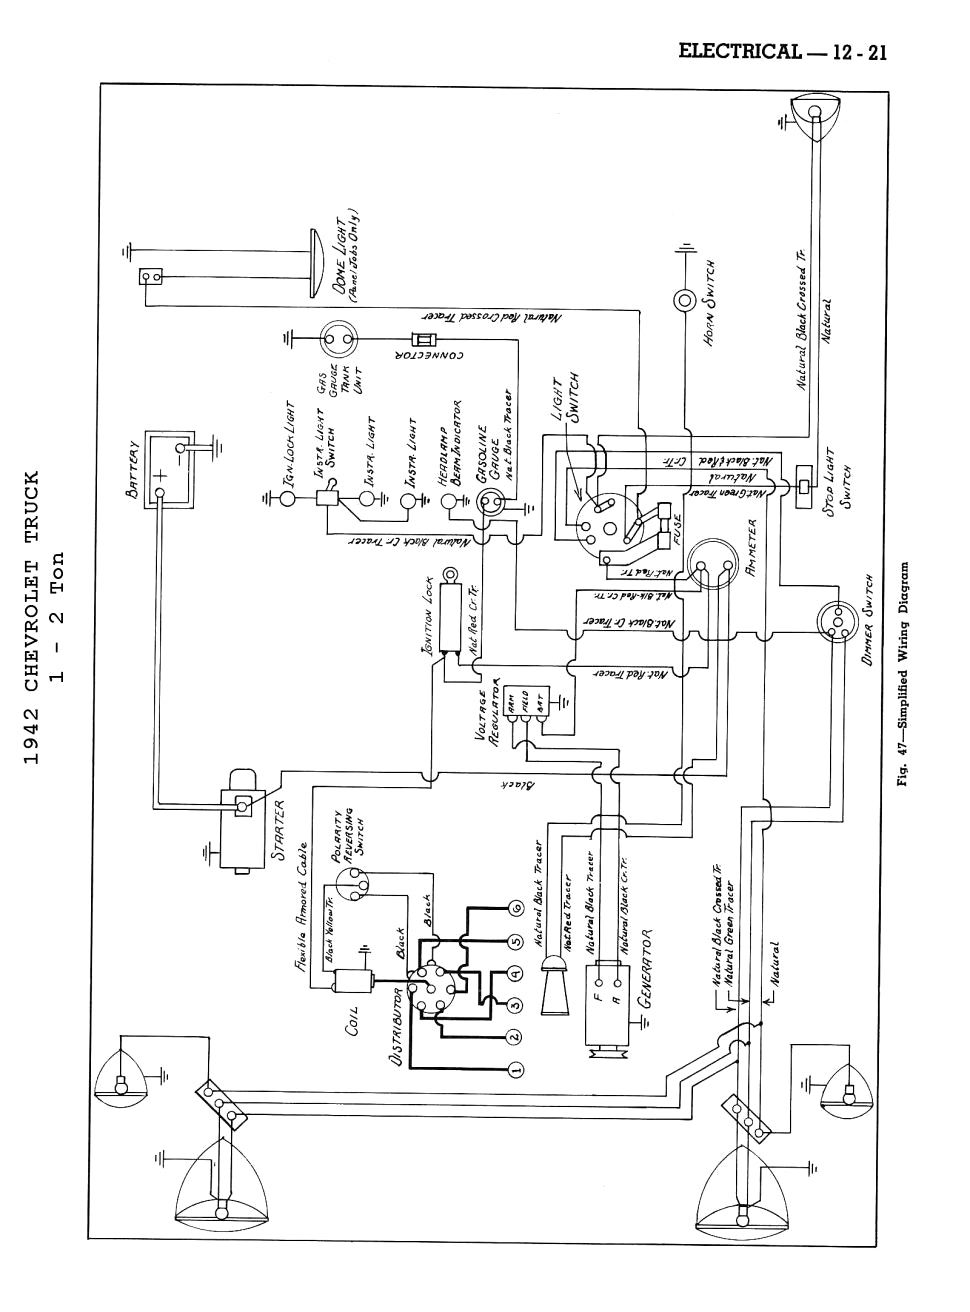 get coleman mach thermostat wiring diagram sample. Black Bedroom Furniture Sets. Home Design Ideas